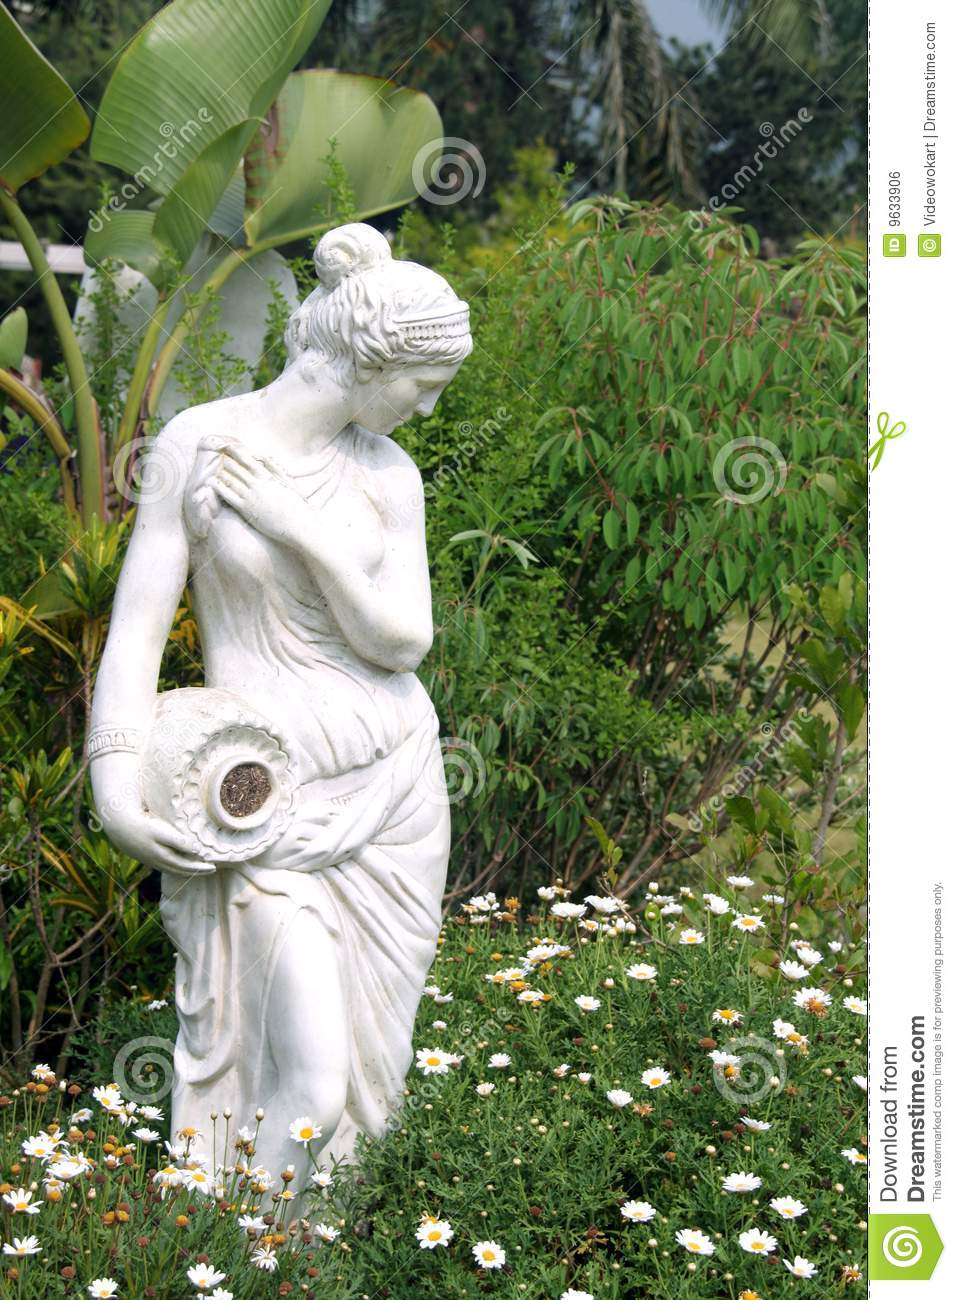 Female Sculpture In A Garden Royalty Free Stock Image Image 9633906